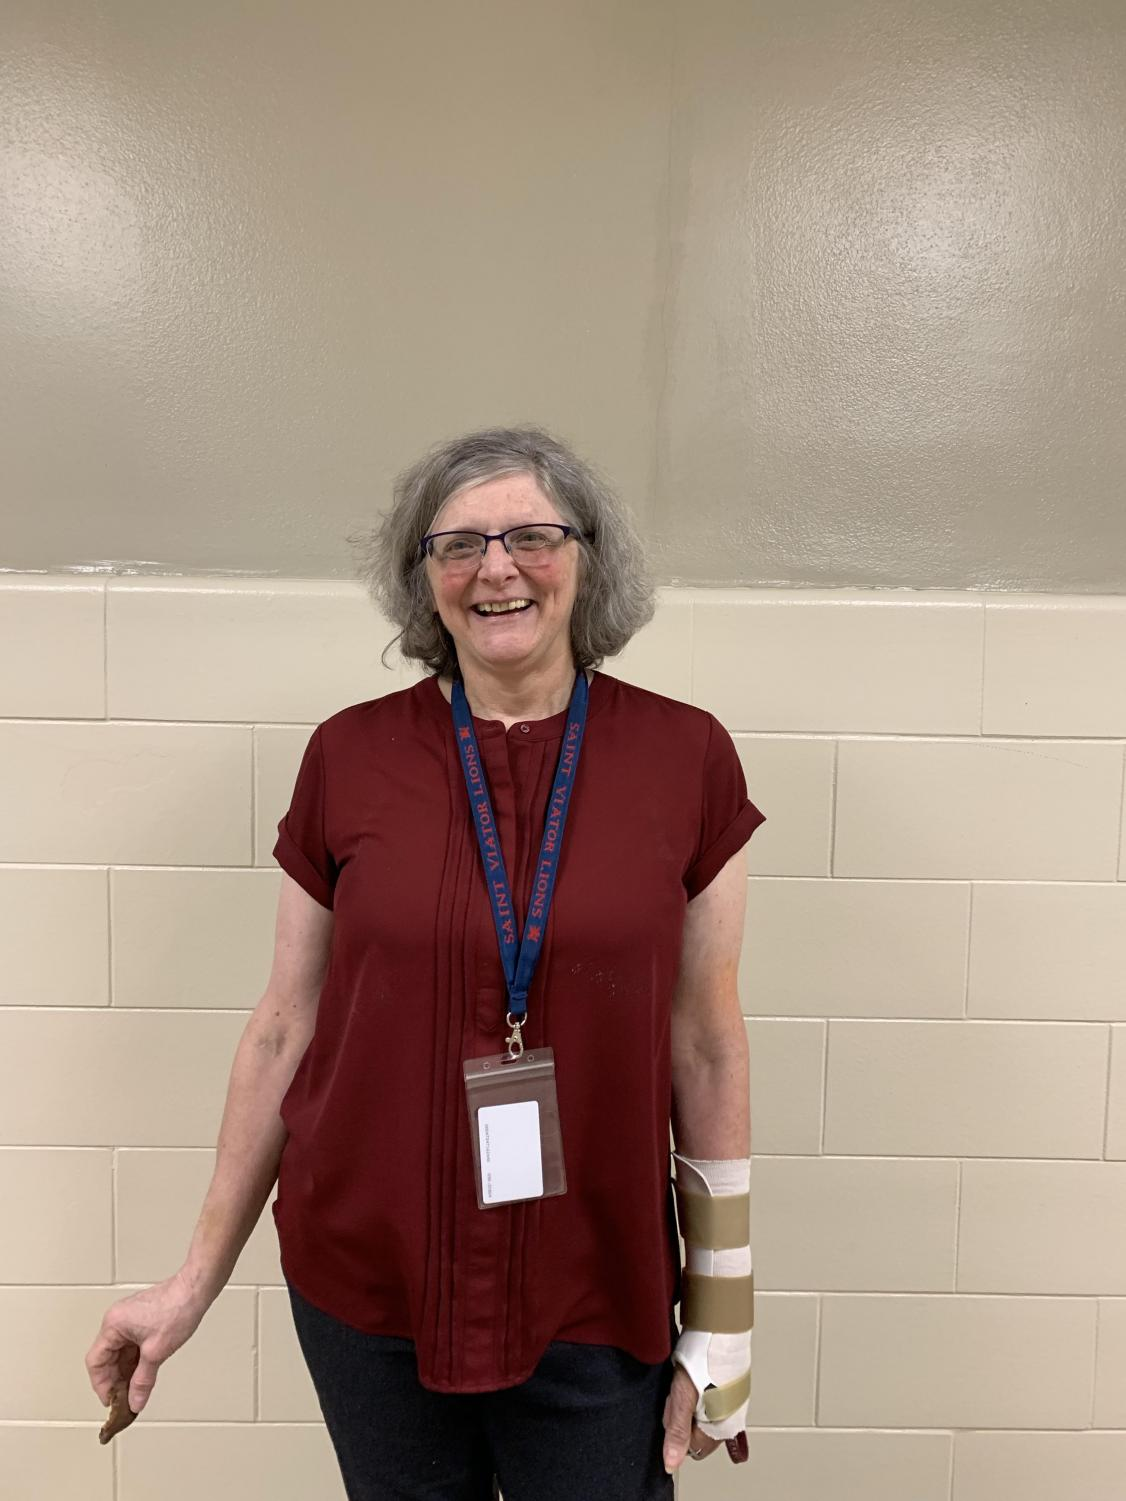 Mrs.+D%27Urso%2C+after+twenty+one+years+of+teaching+in+the+school%2C+is+now+retiring.